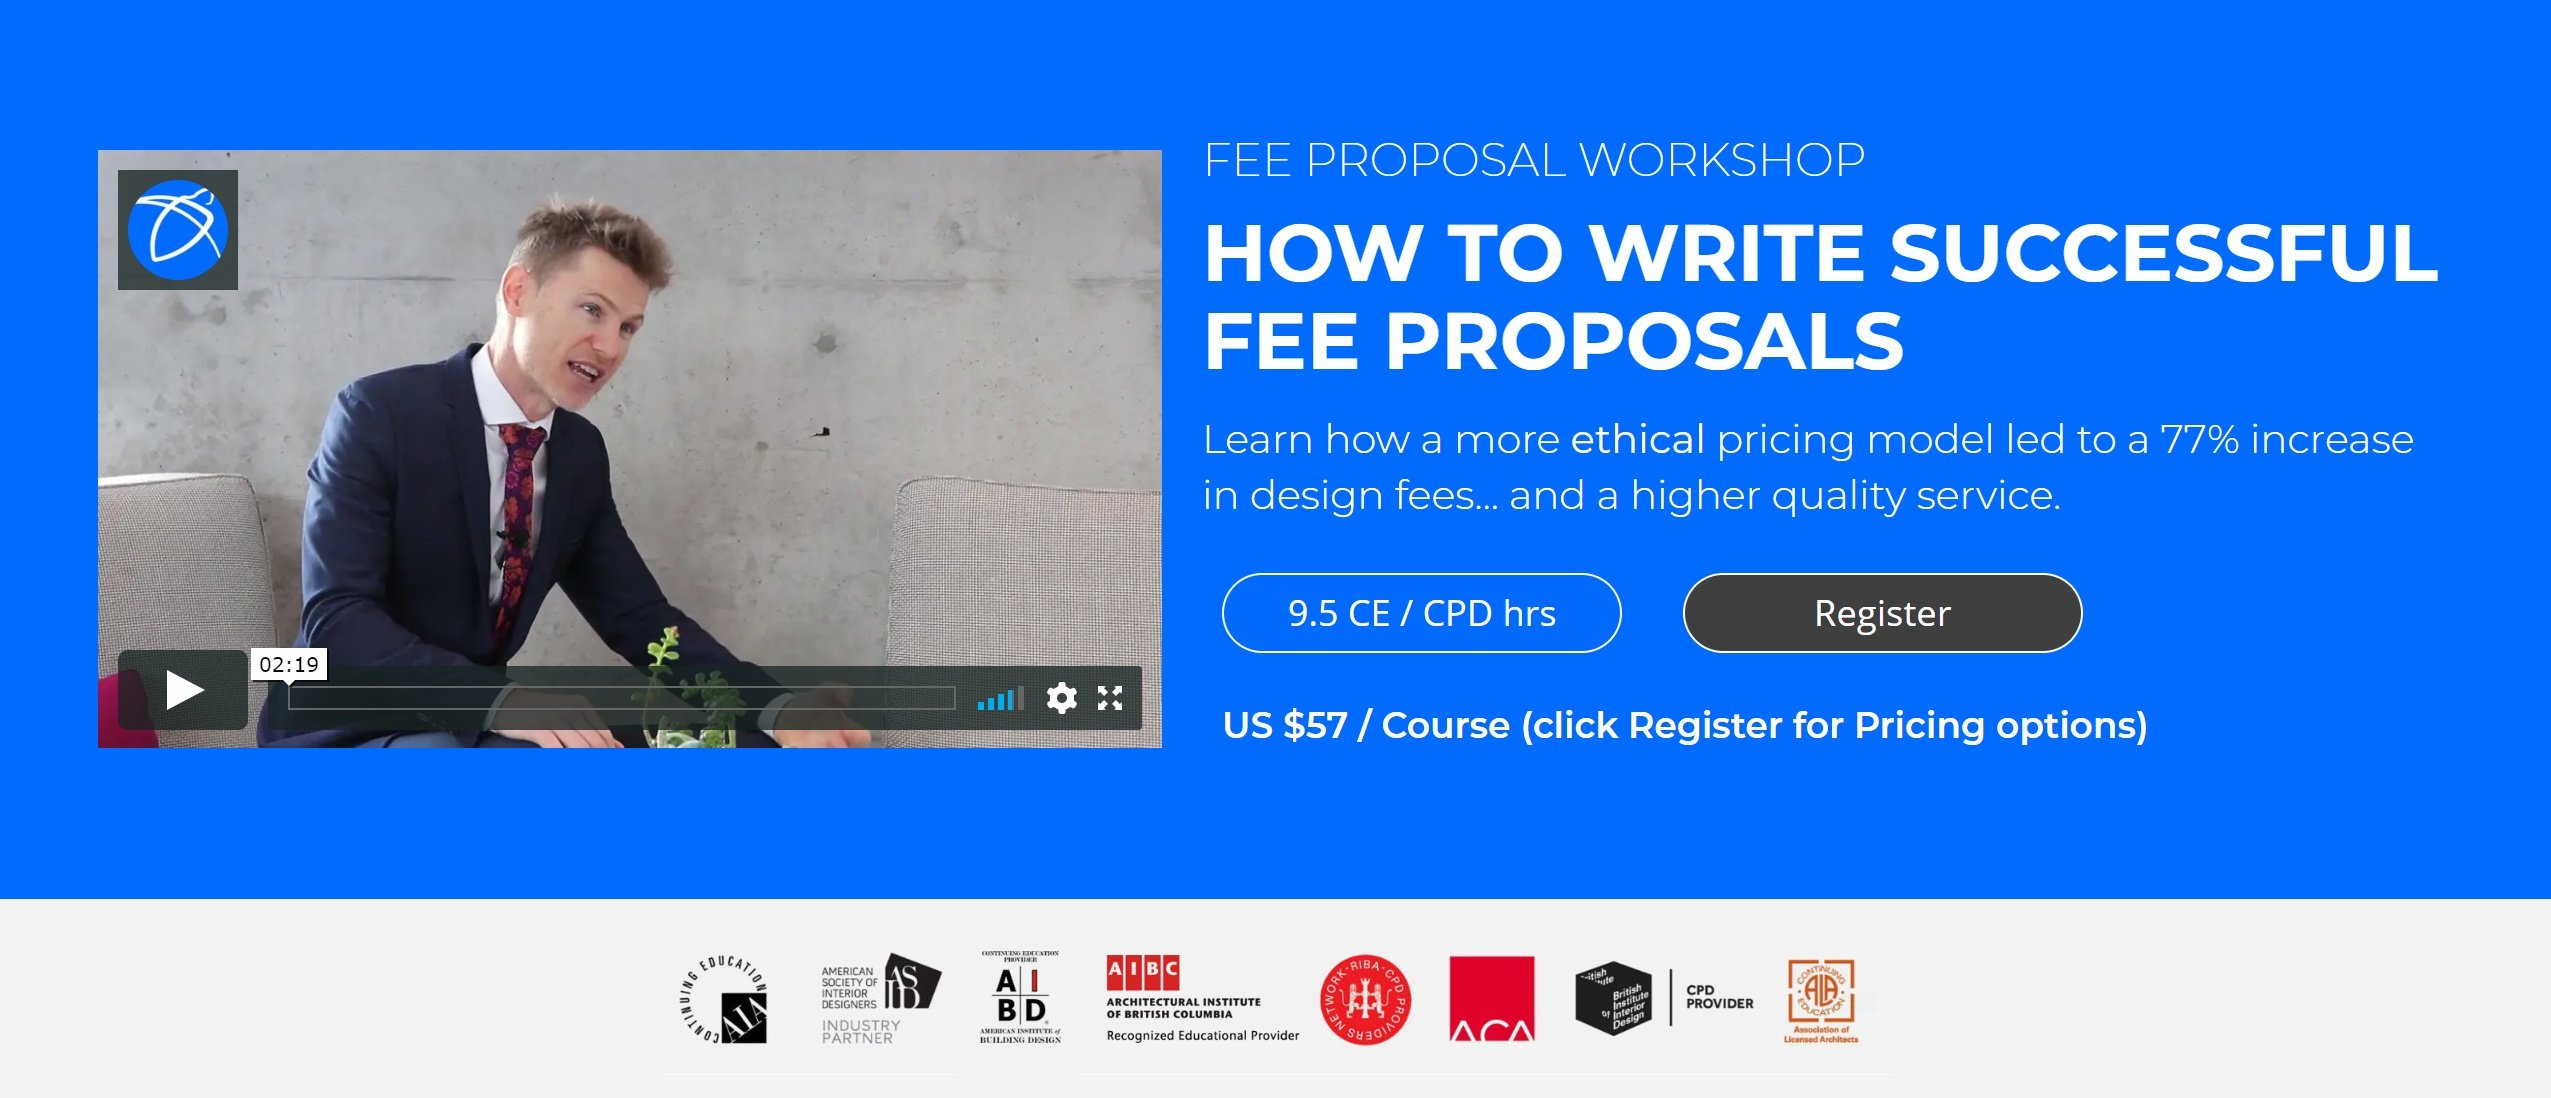 Fee Proposal Workshop Header Image